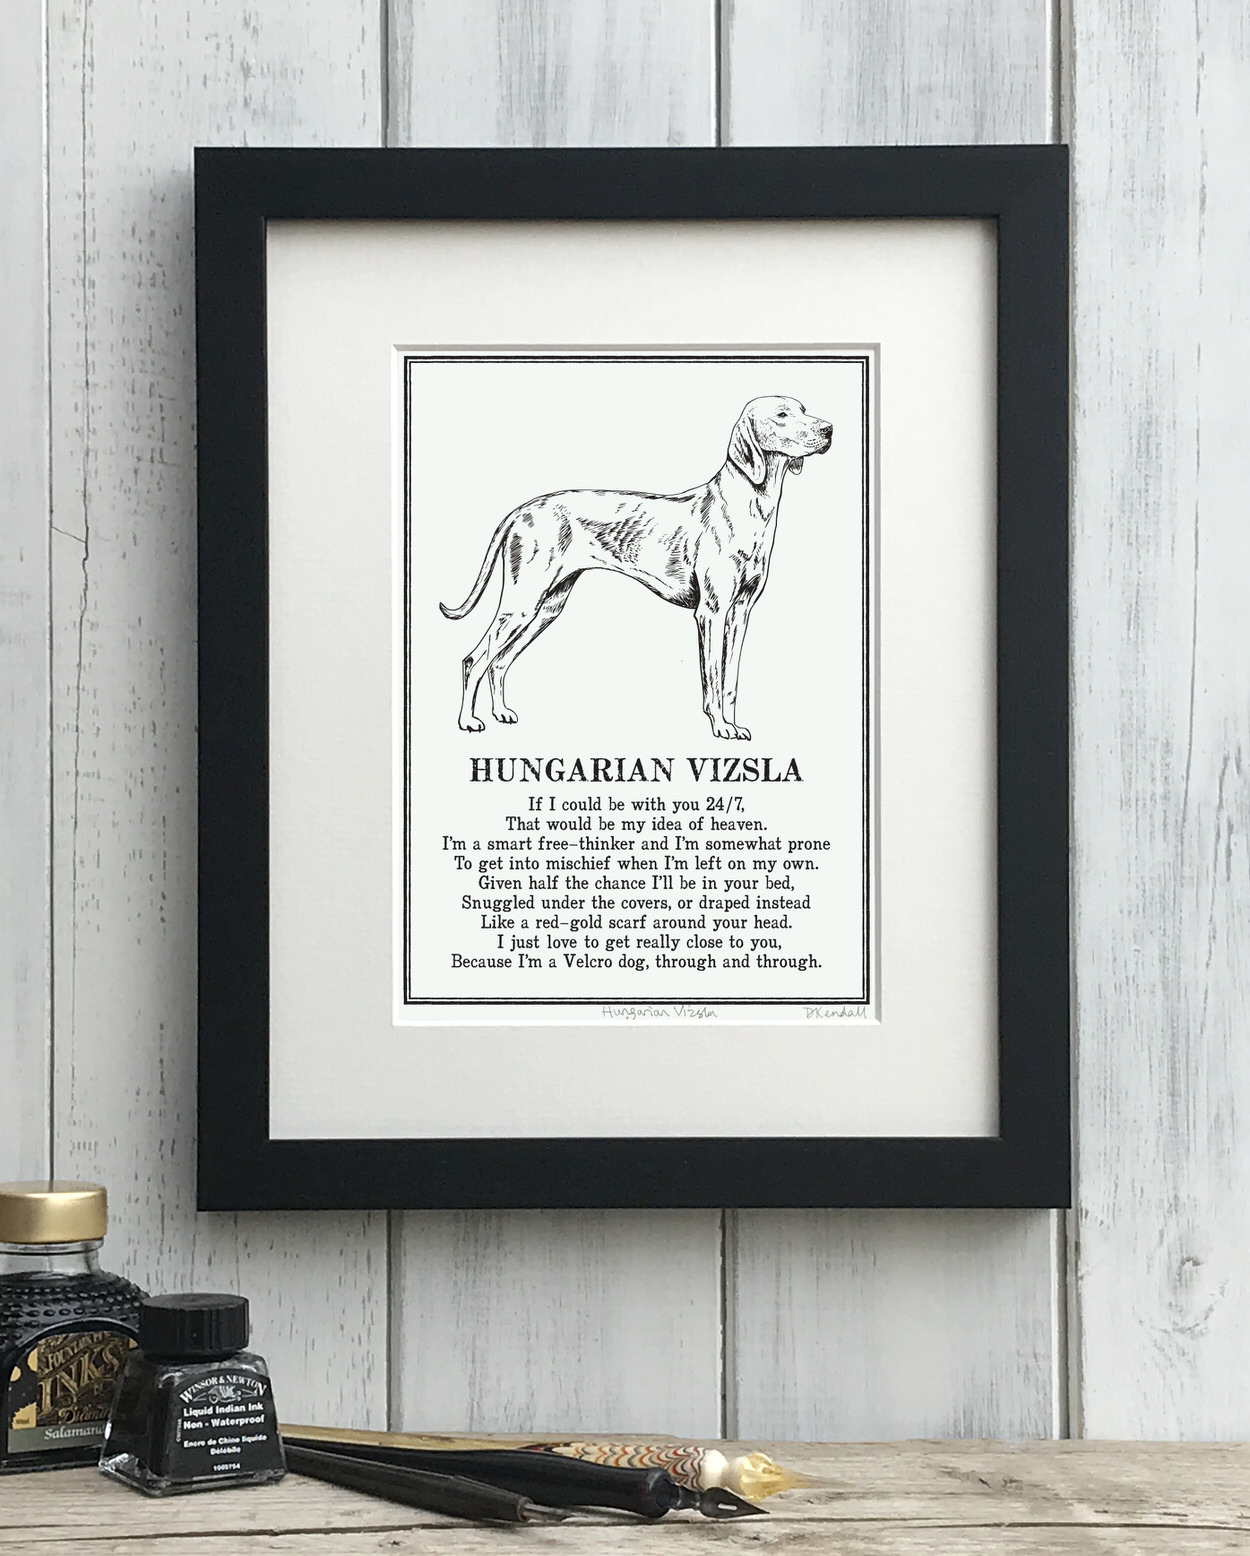 Vizsla print illustrated poem by The Enlightened Hound